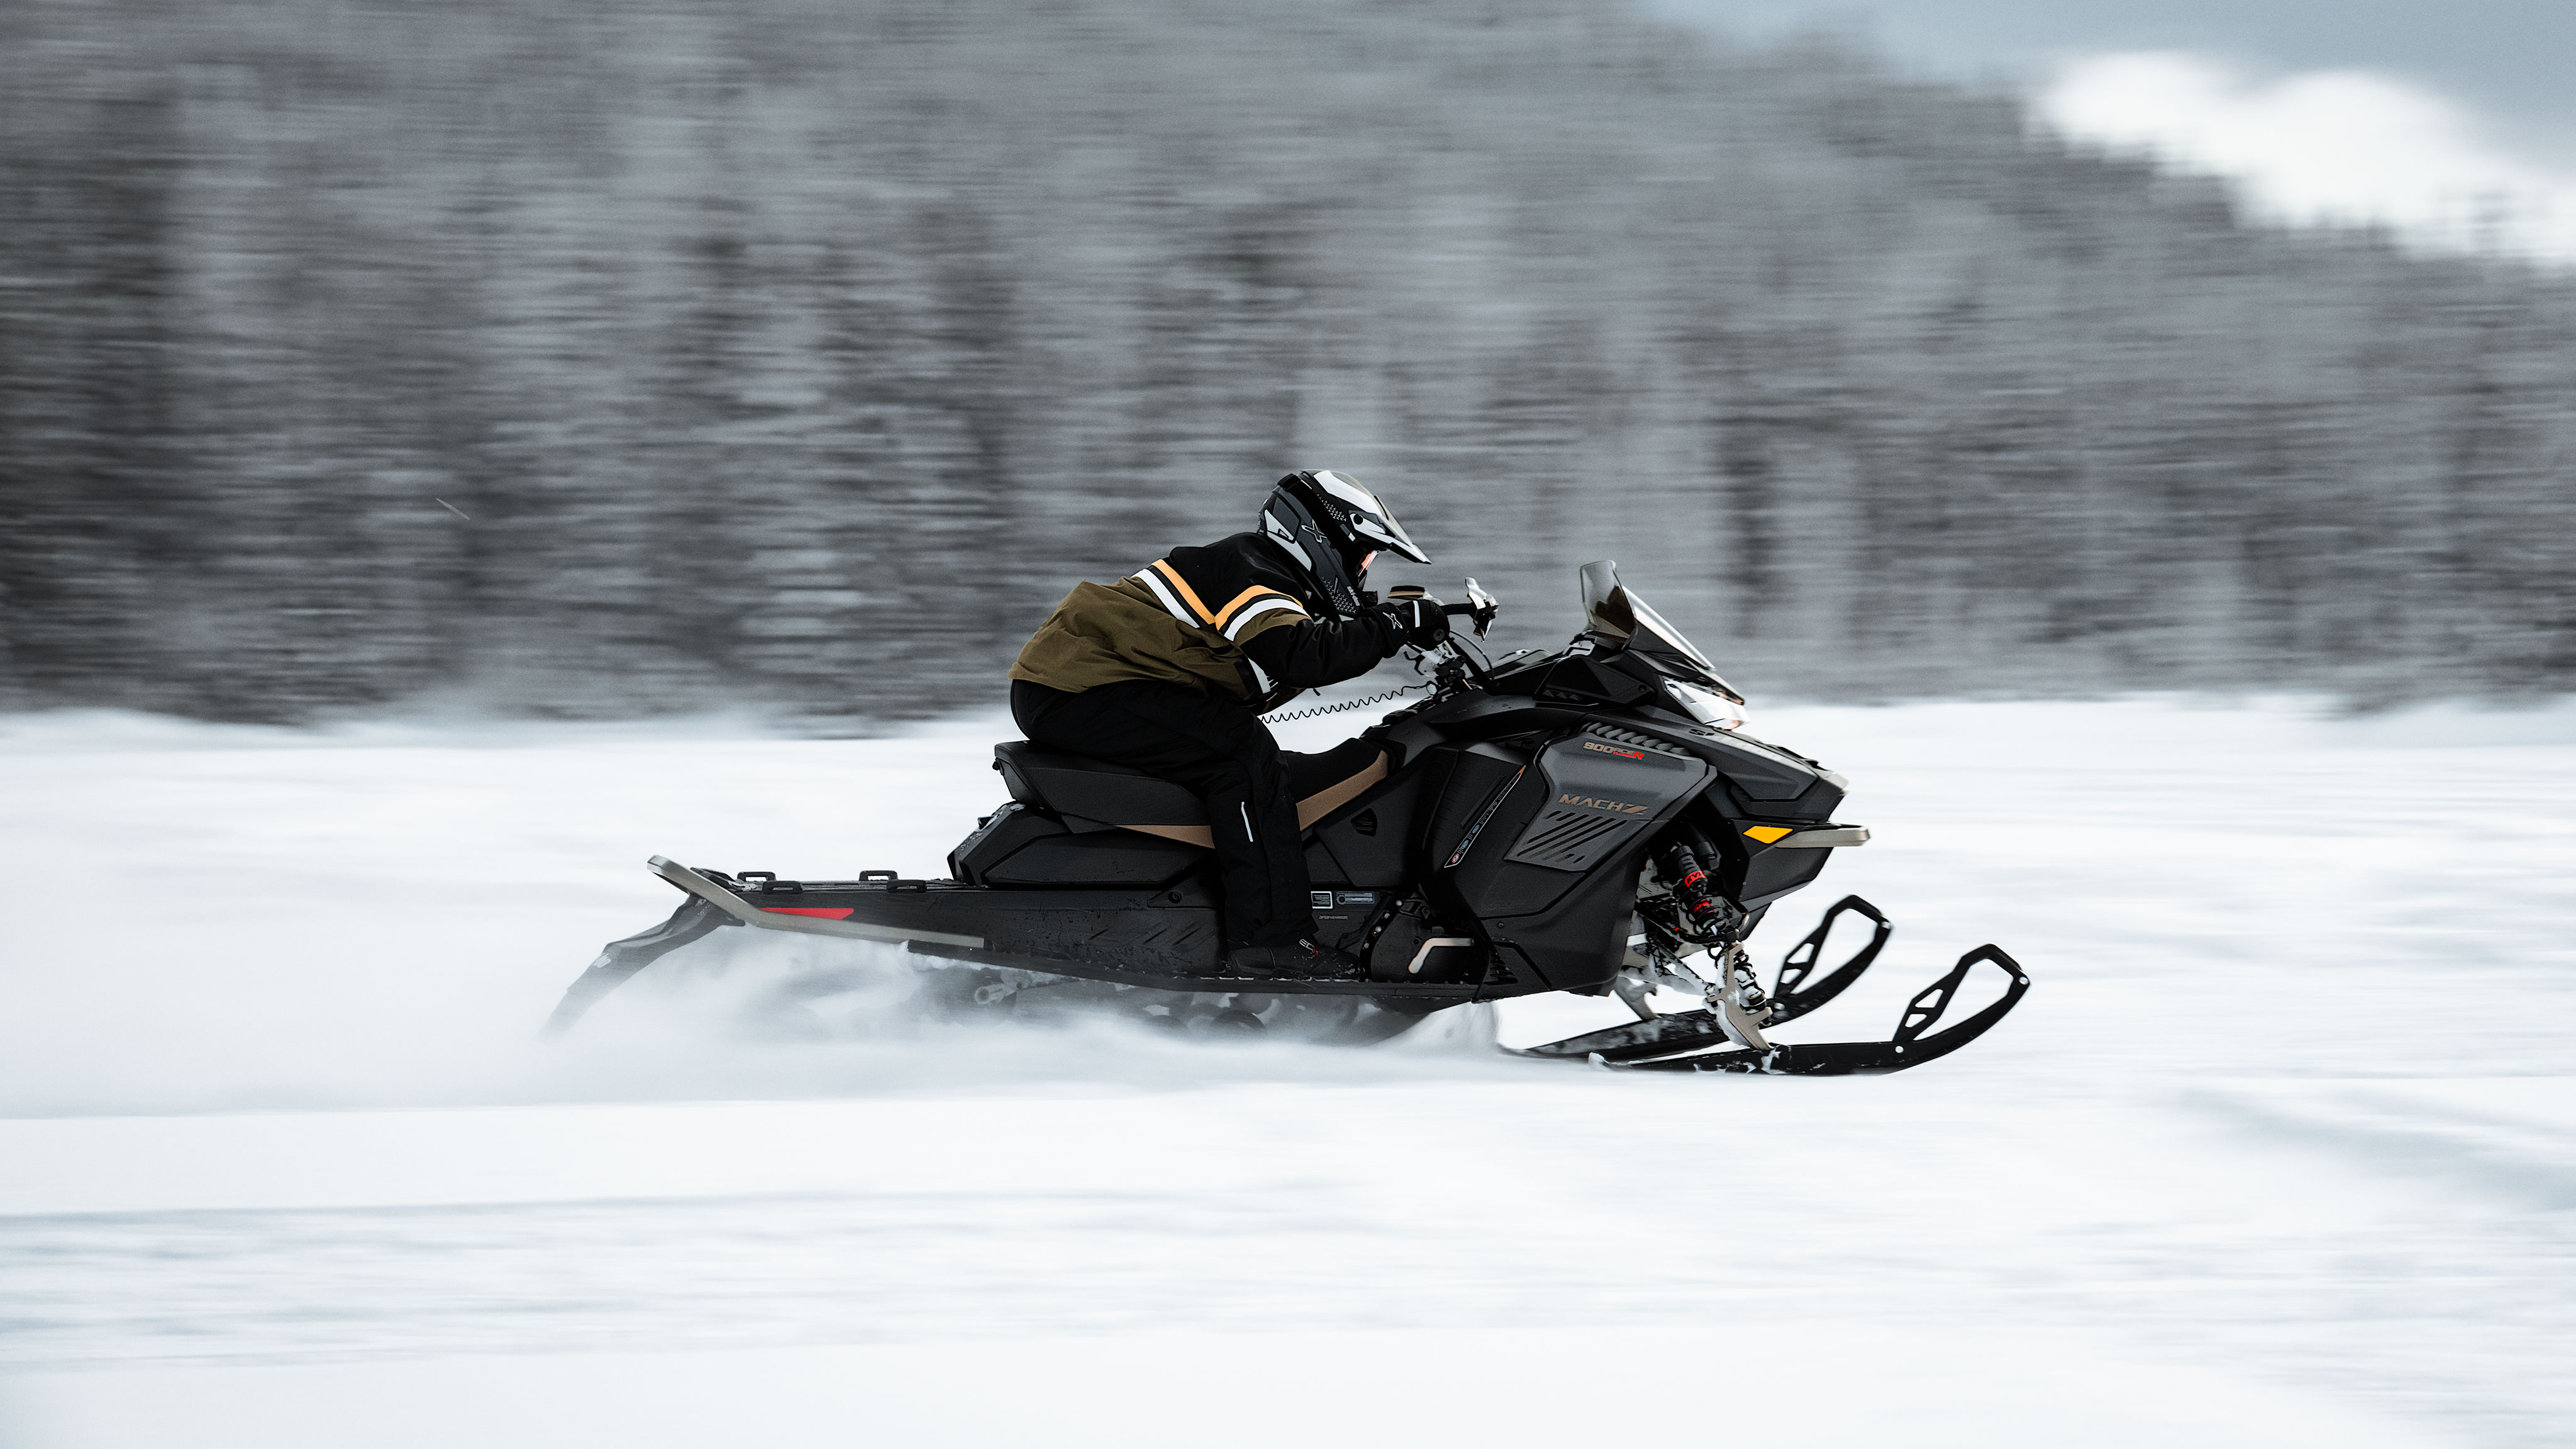 Man driving fast on the 2022 Ski-Doo Mach-Z